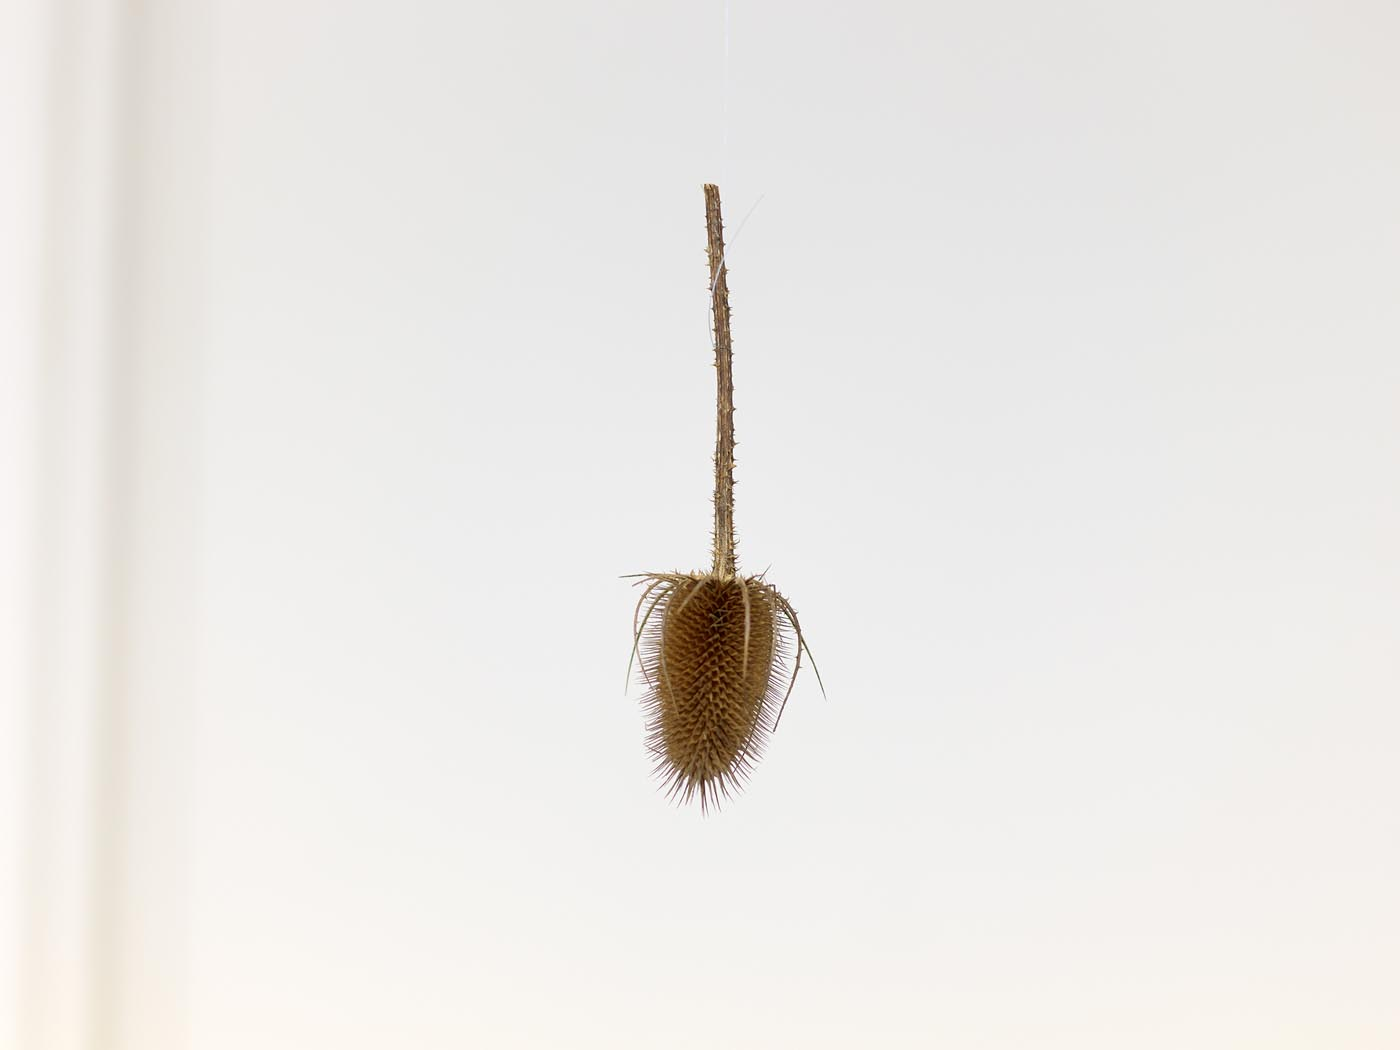 <p><em>Sit</em>, 2019, teasel to discourage sitting on exhibited chairs, origin and courtesy Sir John Soane's Museum, London<br />Photo: Simon Vogel, Cologne</p>